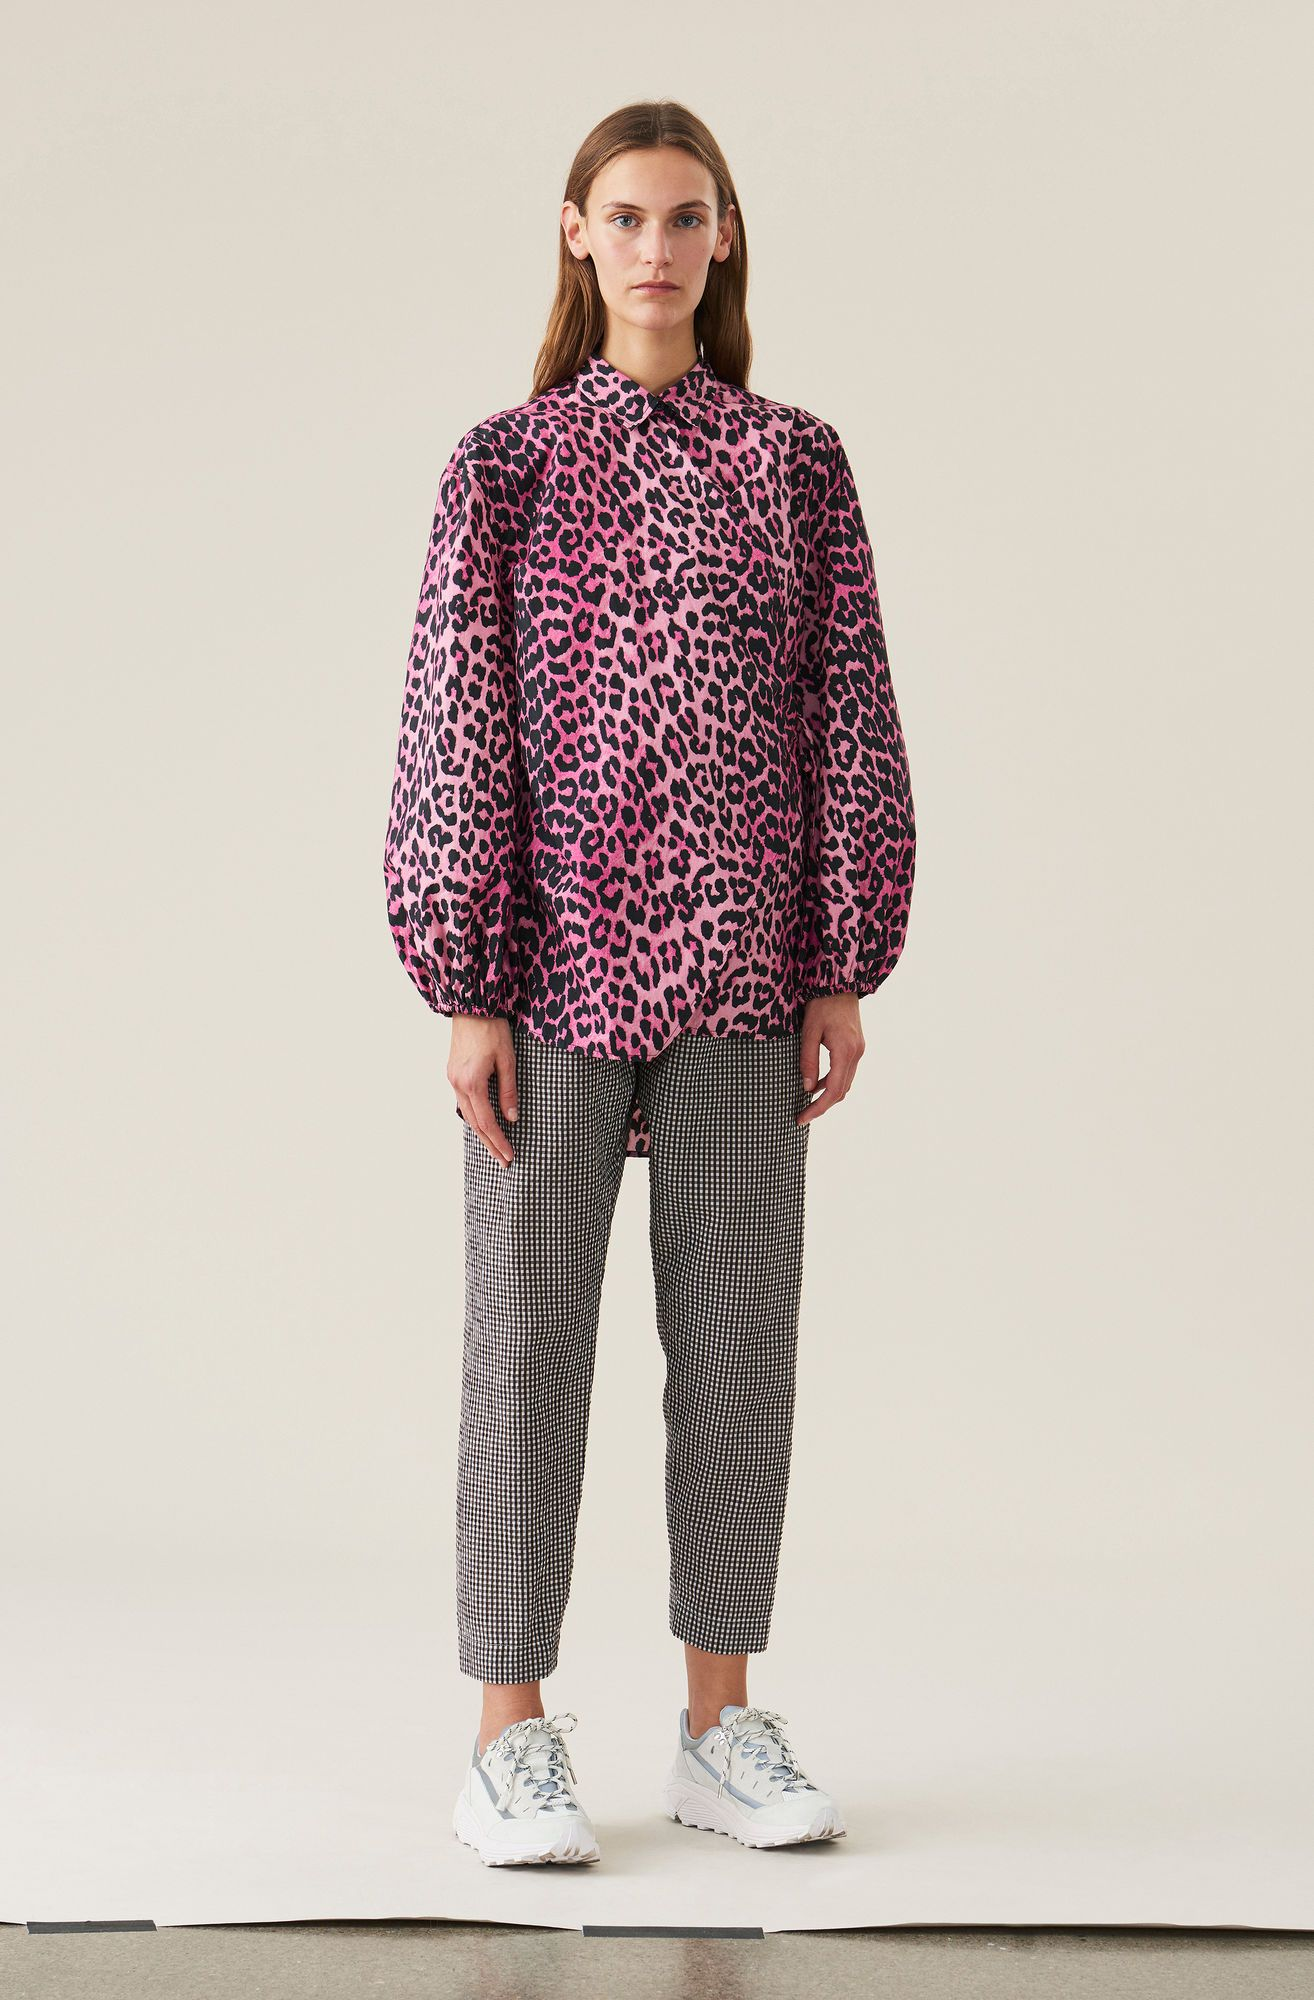 118a15ad9e48 Printed Cotton Poplin Love for Leopard Wrap Shirt, Hot Pink | Woven ...